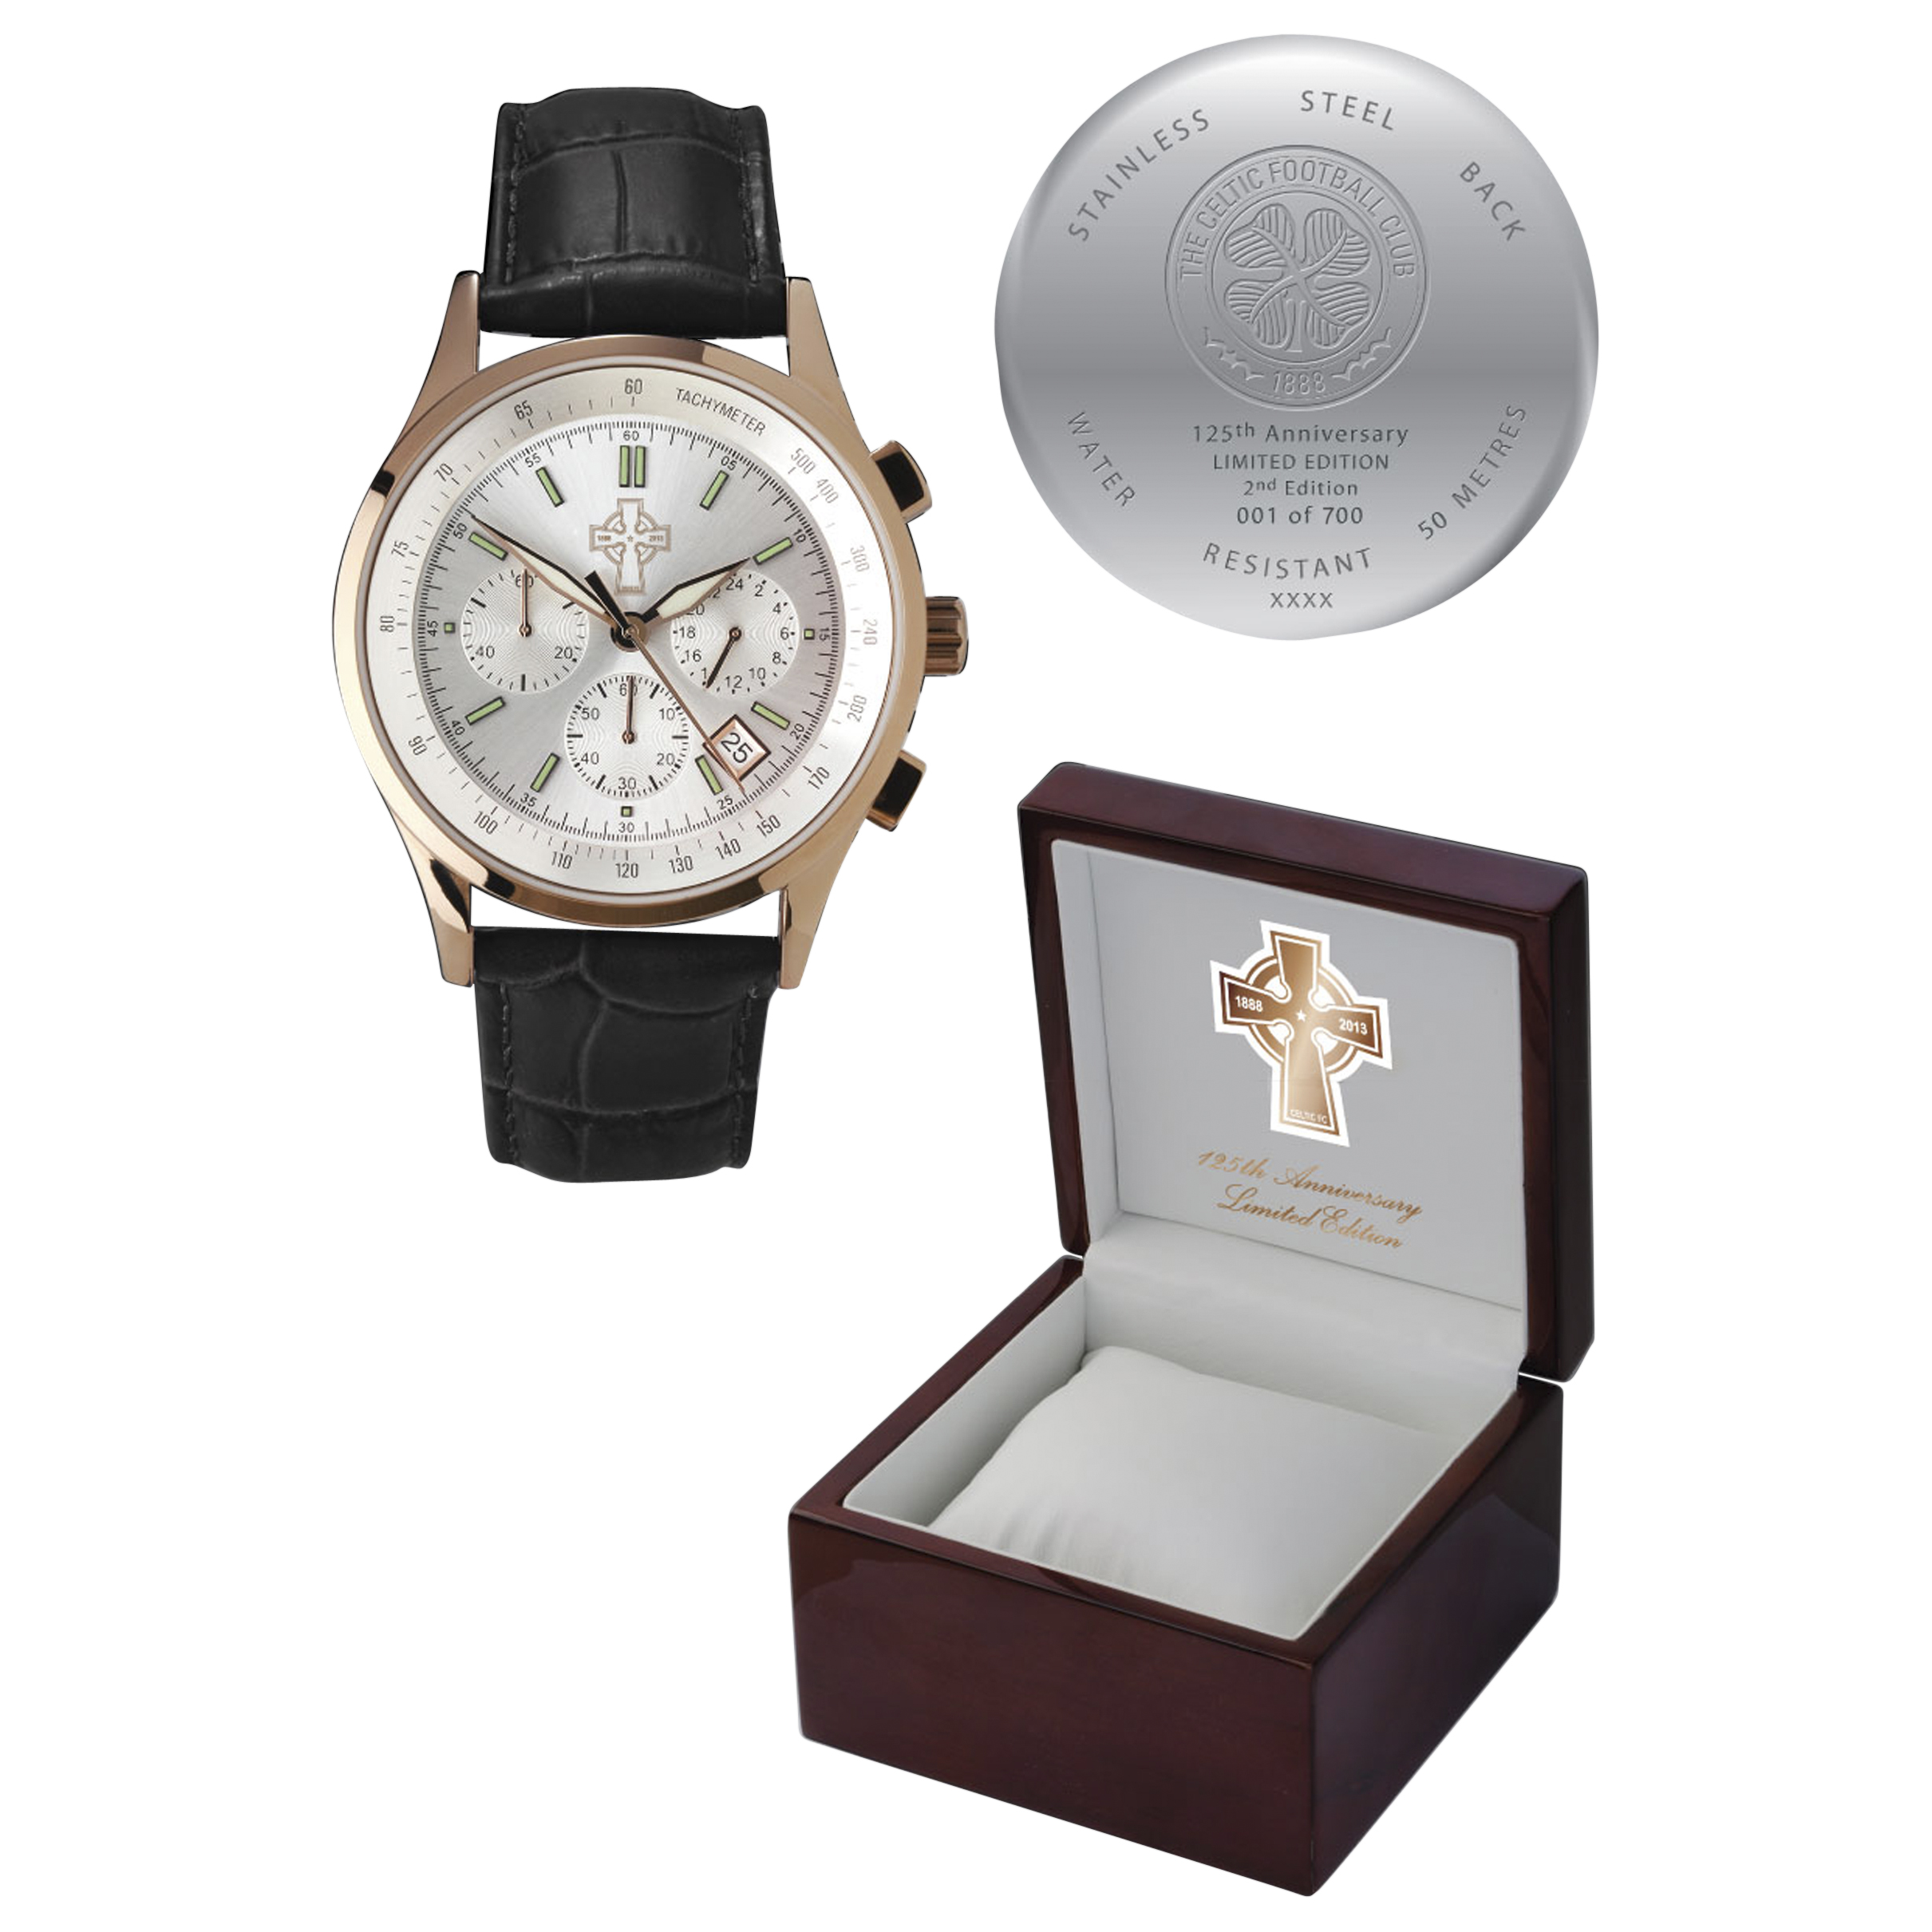 Celtic 125th Anniversary Limited Edition Watch - 2nd Edition